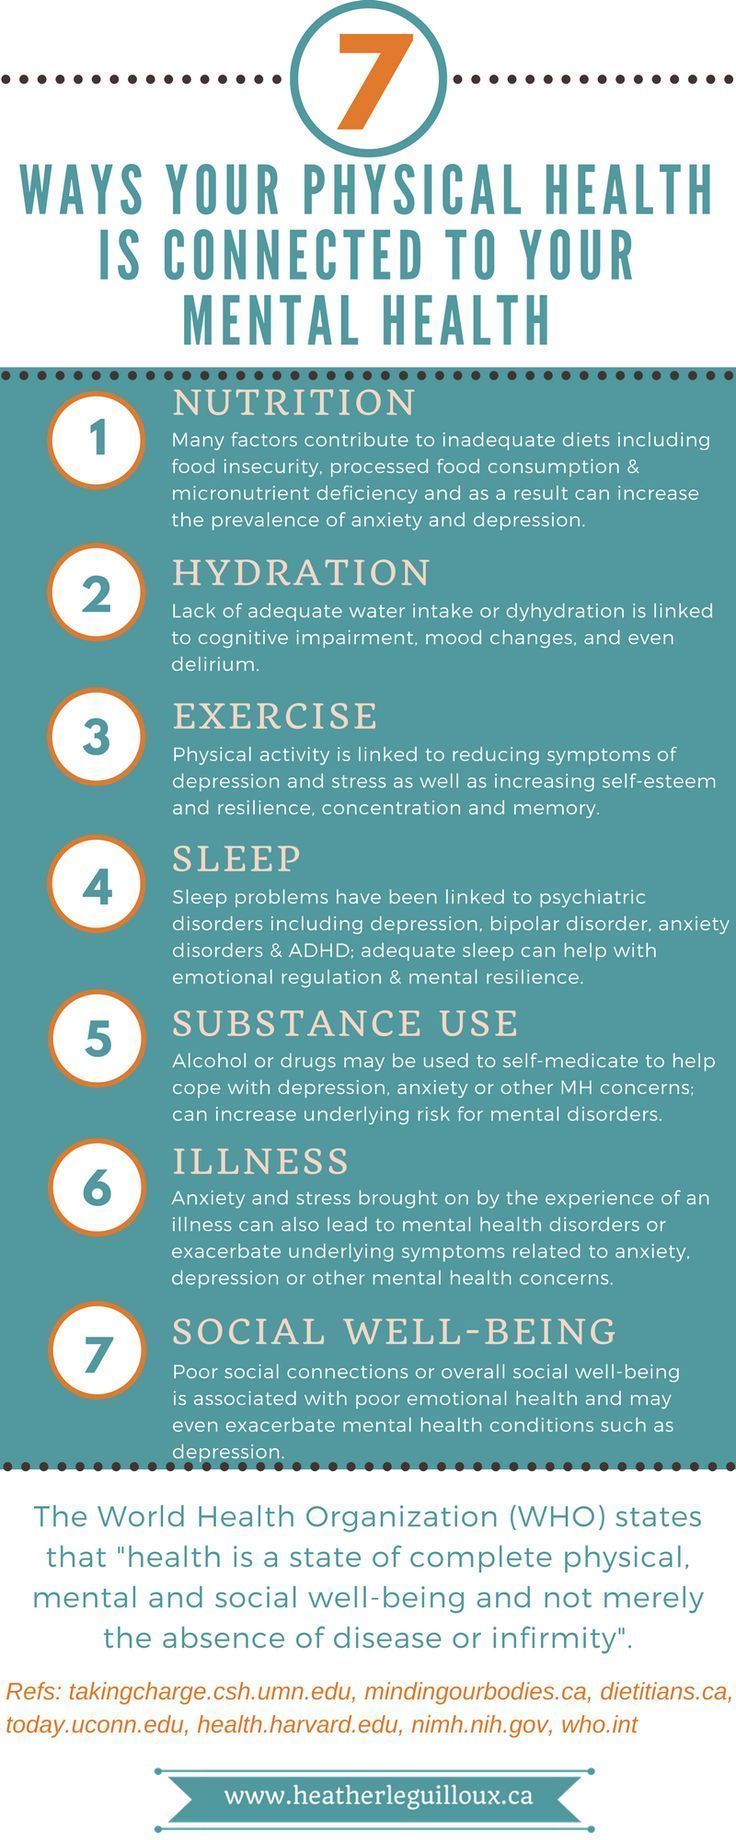 7 Ways Your Physical Health is Connected to Your Mental Health including nutrition hydration exercise sleep substance use illness and social wellbeing  blog post via hleg...